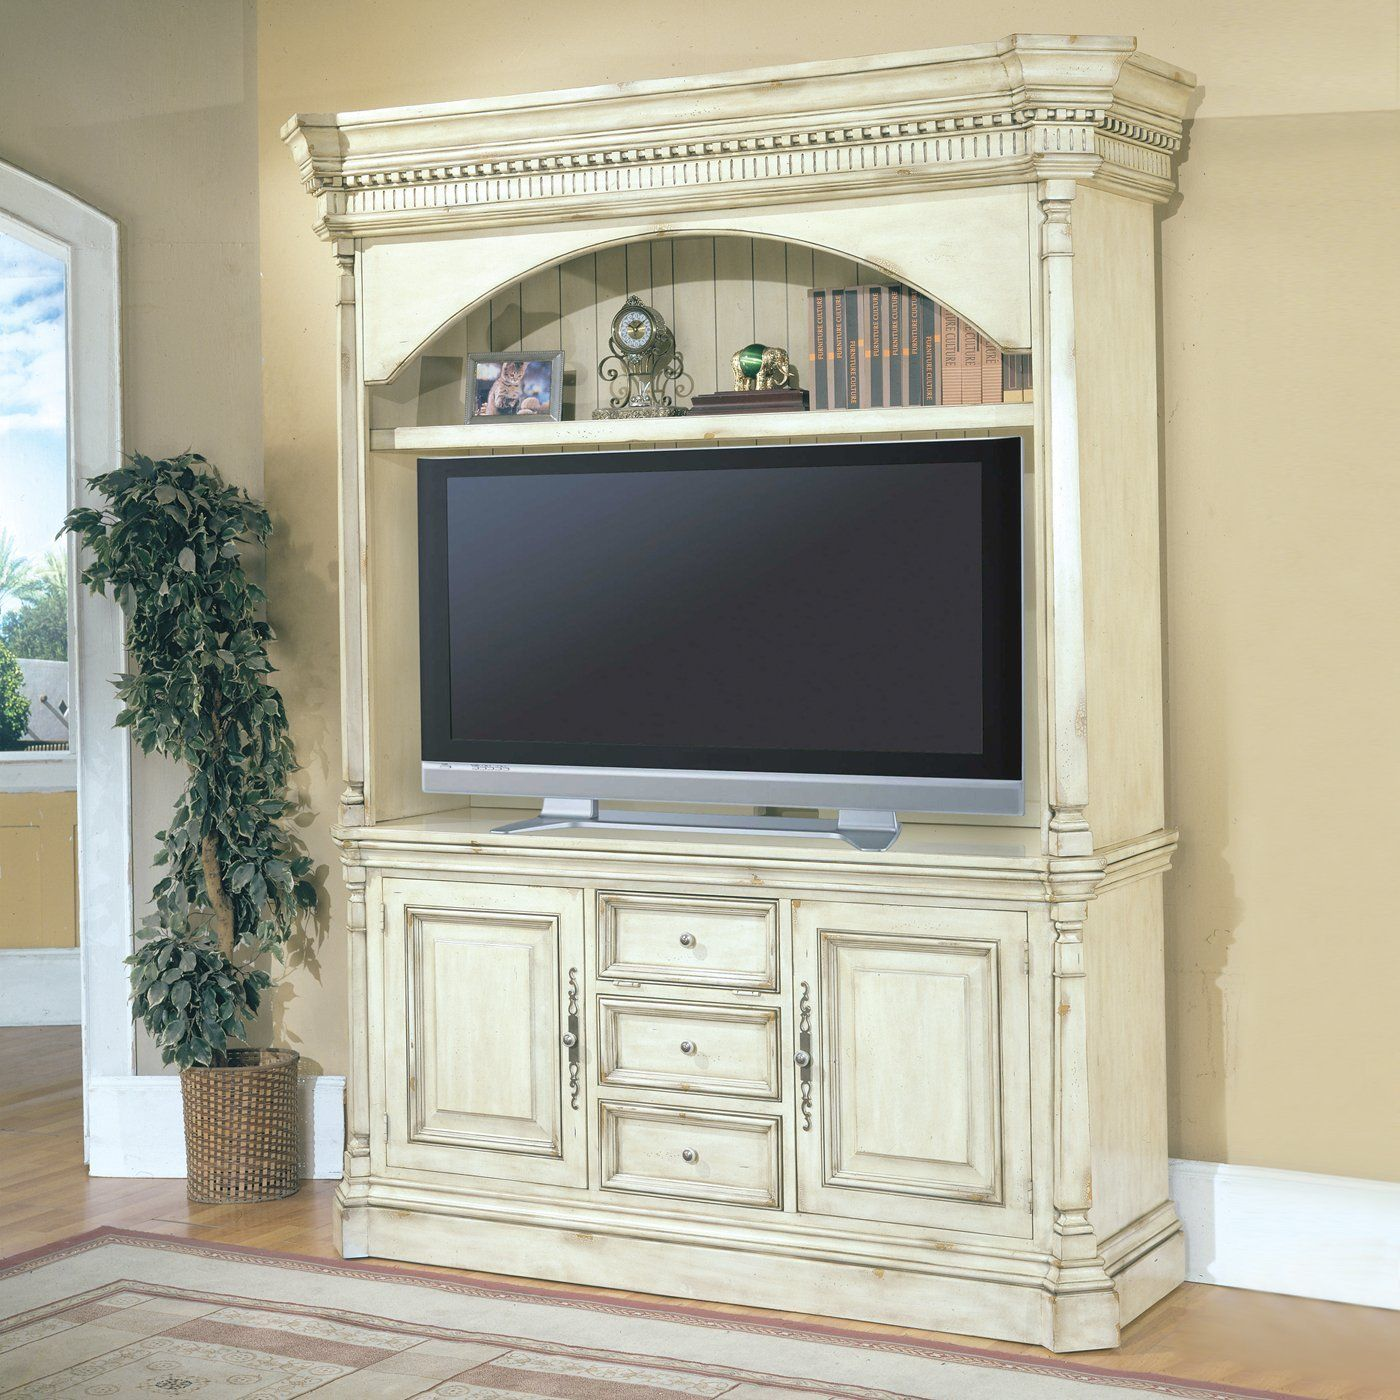 Parker house wes 600 3ec westminster three piece entertainment center home furniture showroom for The parkers tv show living room